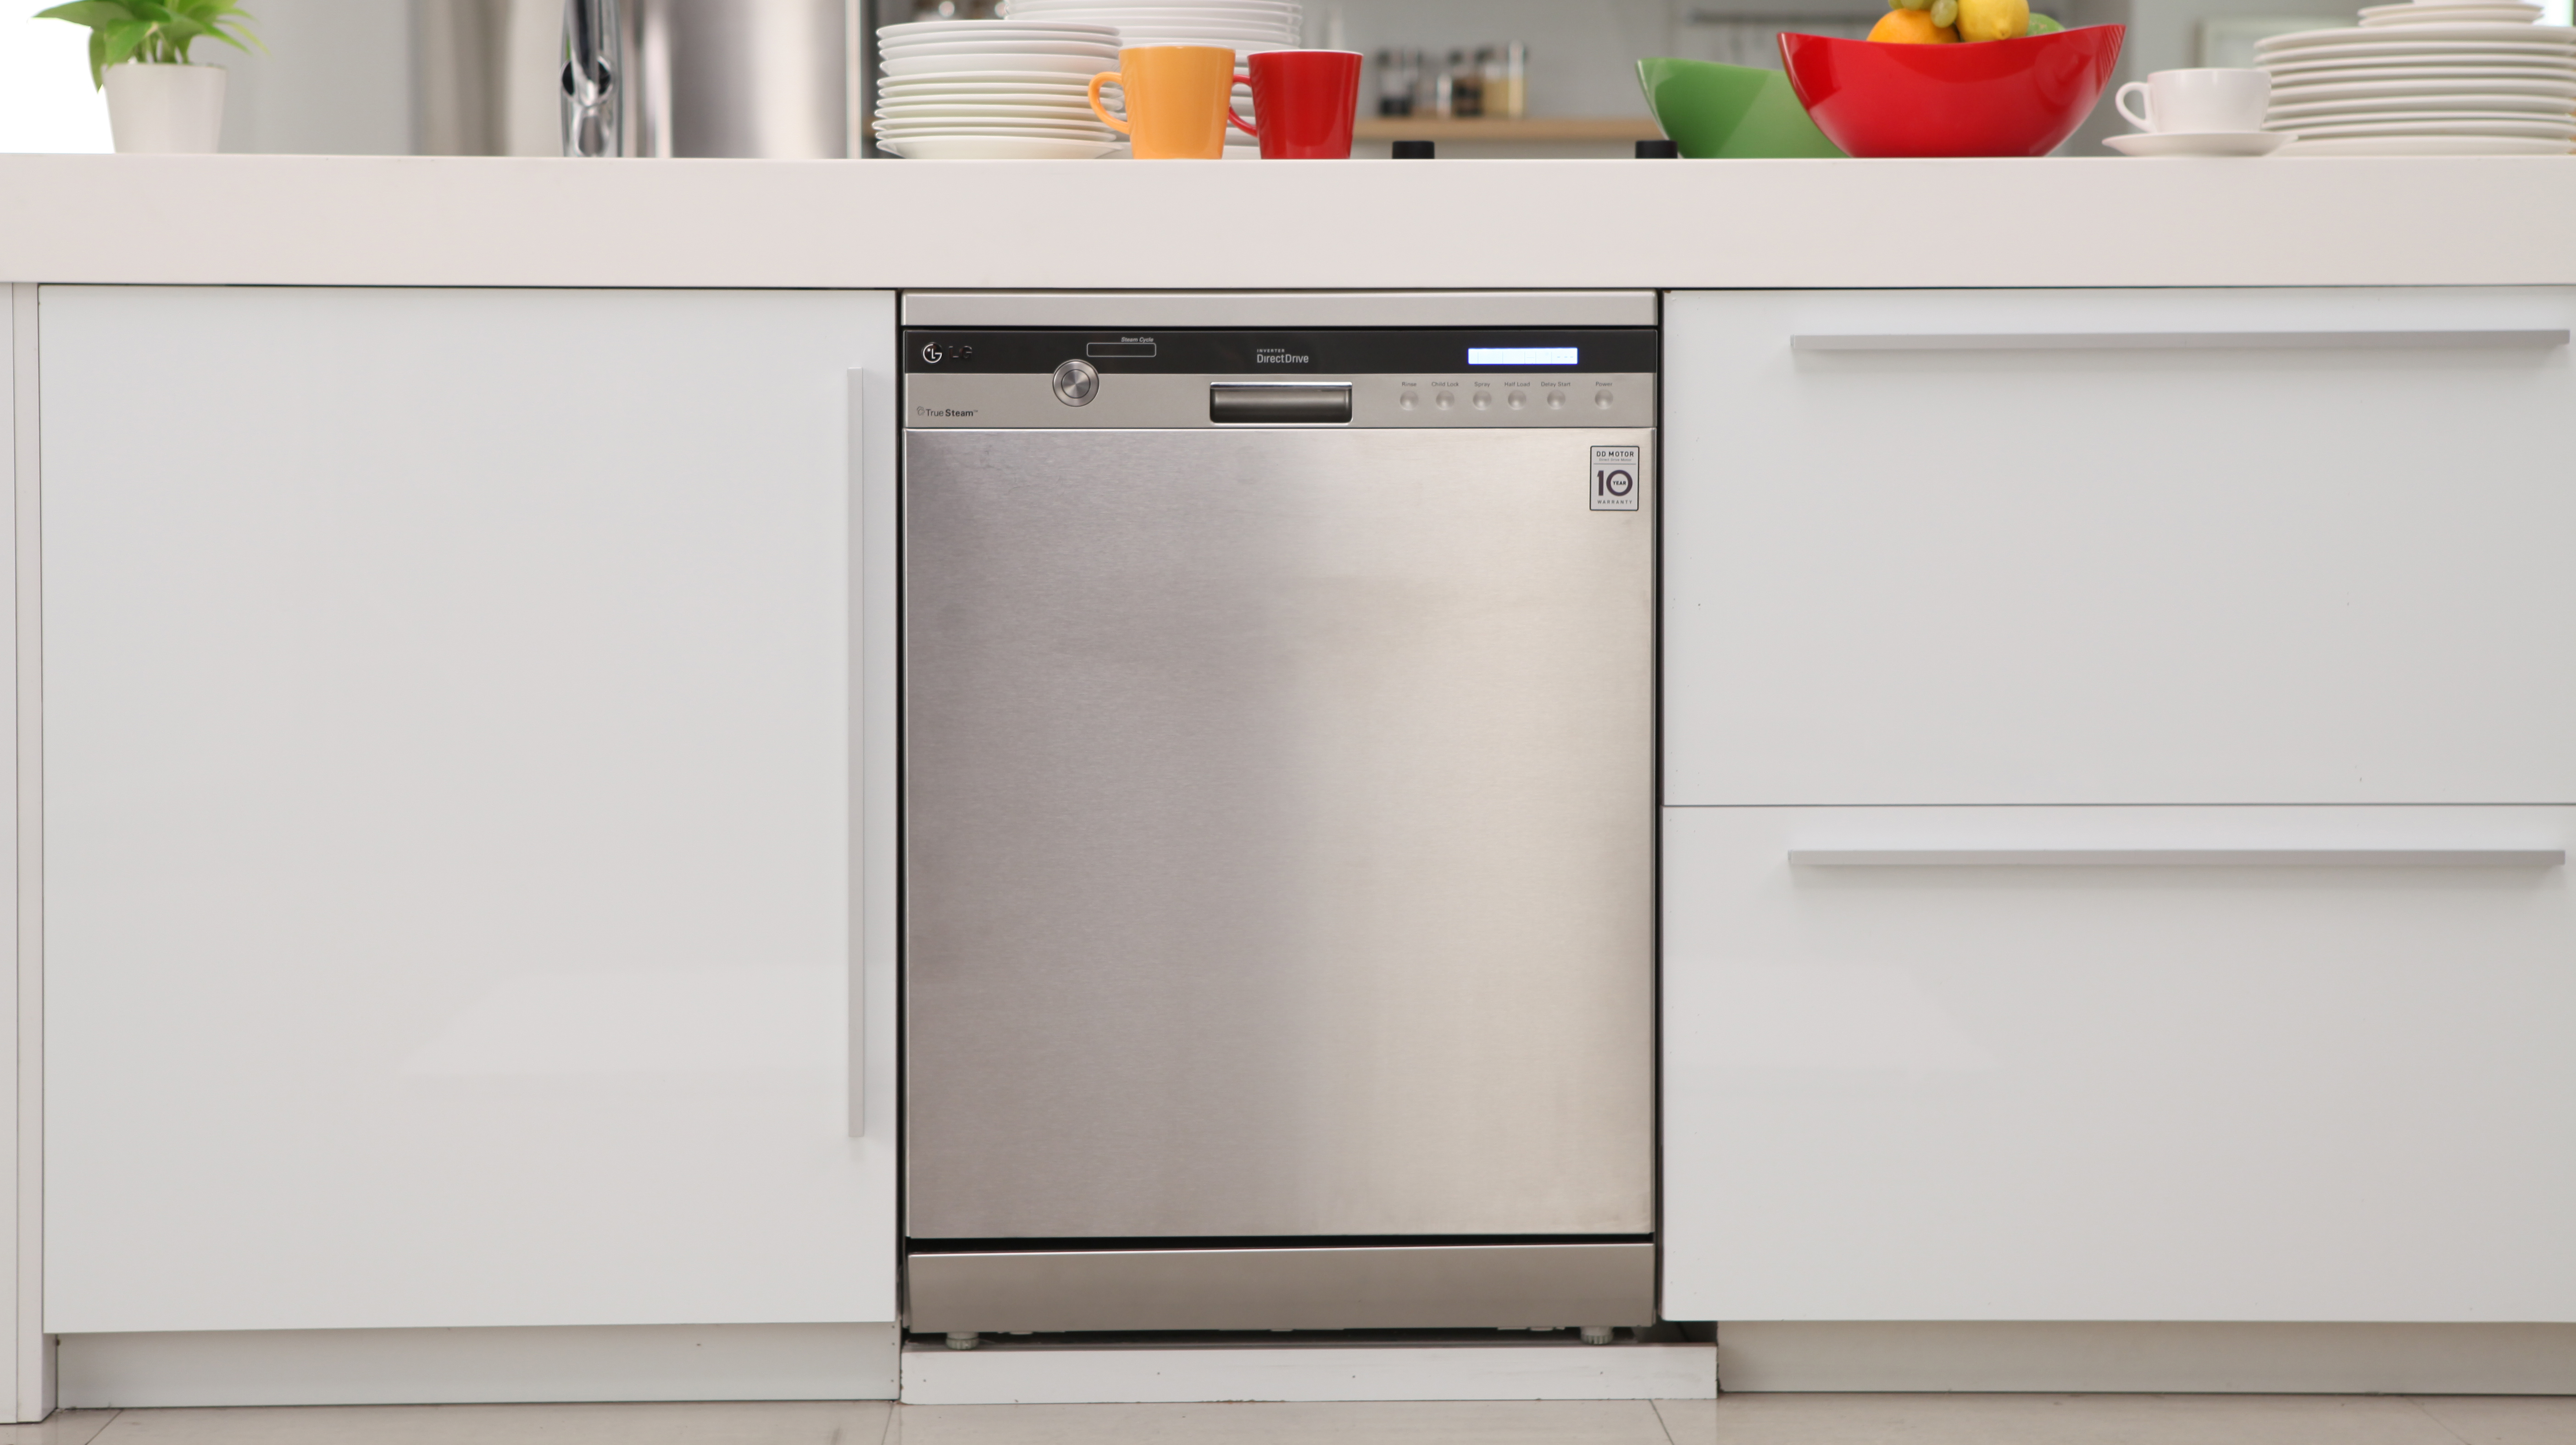 The 7 Questions You MUST Ask When Purchasing A Dishwasher